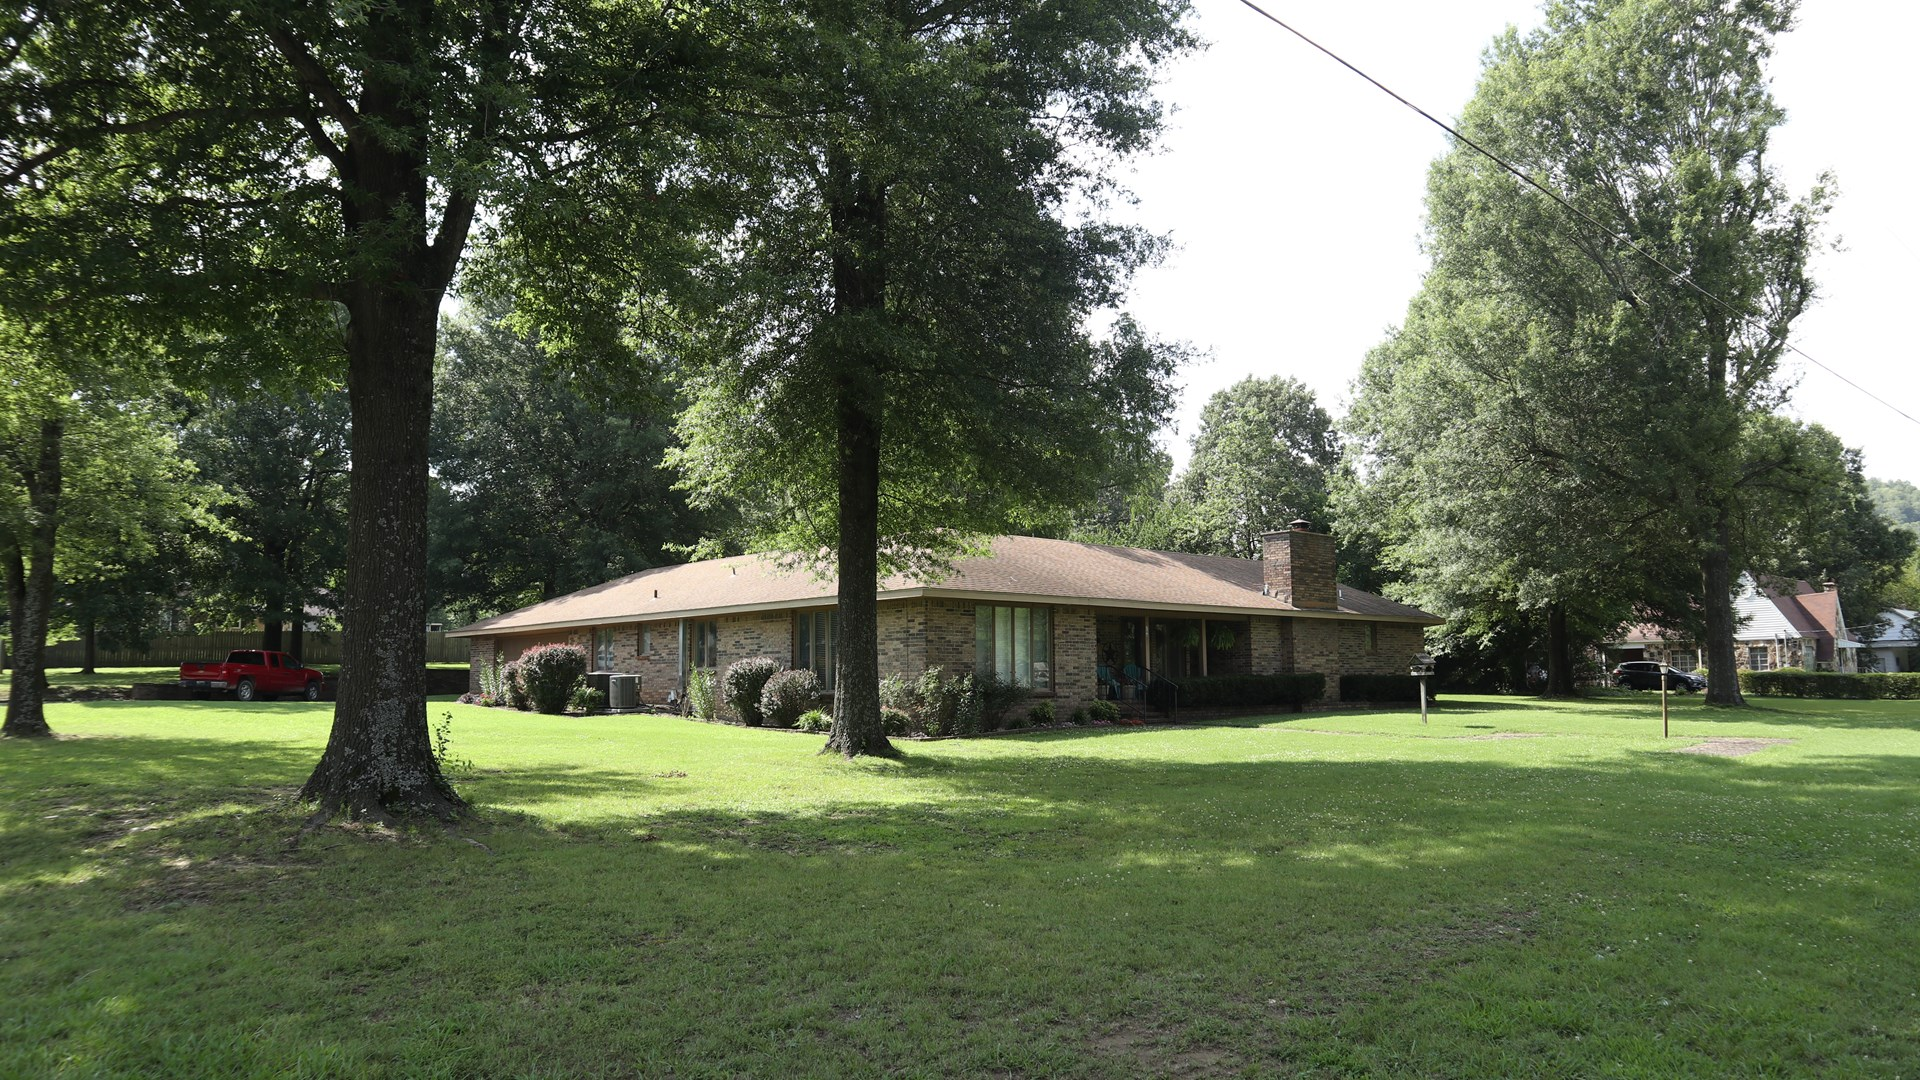 Ozarks In Town Brick Home for Sale in Salem Arkansas